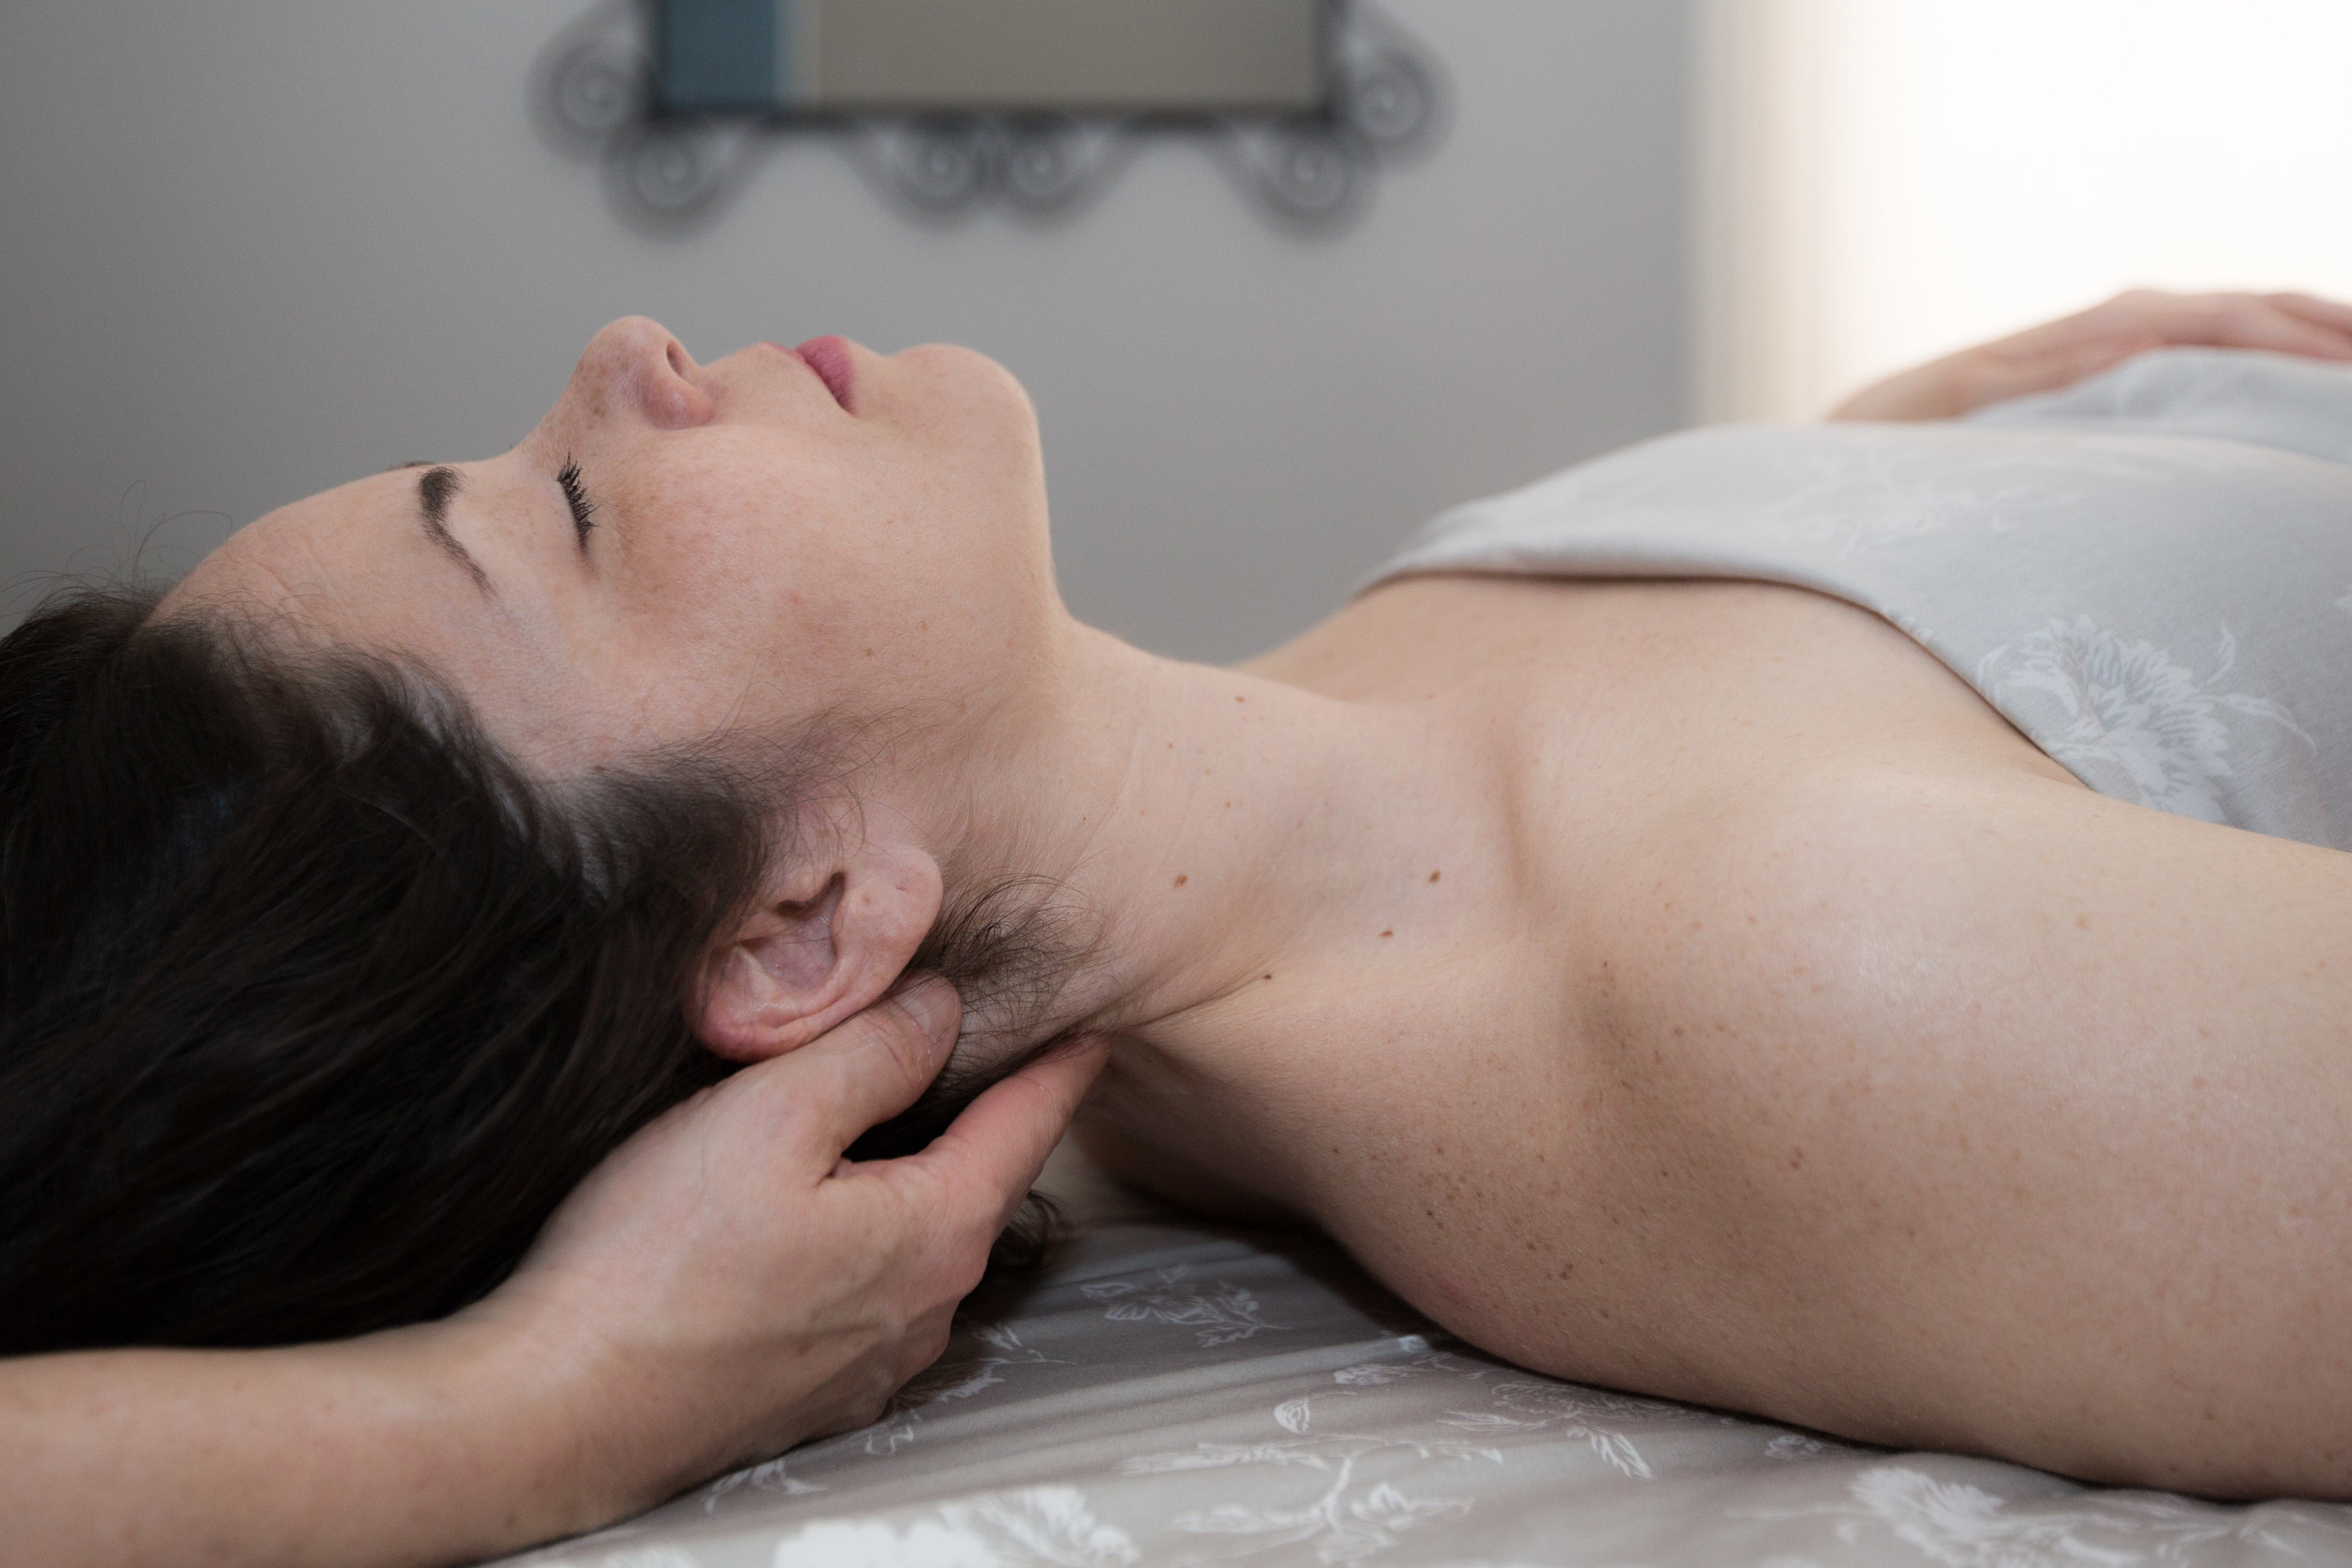 """Biodynamic Craniosacral Therapy - Biodynamic Craniosacral Therapy is a gentle form of bodywork that helps to release tension held deep within the nervous system so that the rest of the body can relax and start to heal from the inside out. This hands-on therapy is non-invasive and non-manipulative, practiced as taught by Franklyn Sills, and focuses on the """"inherent ordering principal,"""" meaning that each person is born with a """"blueprint of perfect health"""" that remains with us our entire lives, and around which our cellular and tissue world organizes. Resistances and congestion, caused by experiences such as traumas and injuries and influenced by genetics, cause the tissue and fluid relationships of the body to lead to pain and dysfunction.The practitioner listens for and assists the client's inherent healing intelligence to reconnect with its state of balanced health already available.Benefits of Craniosacral Therapy →"""